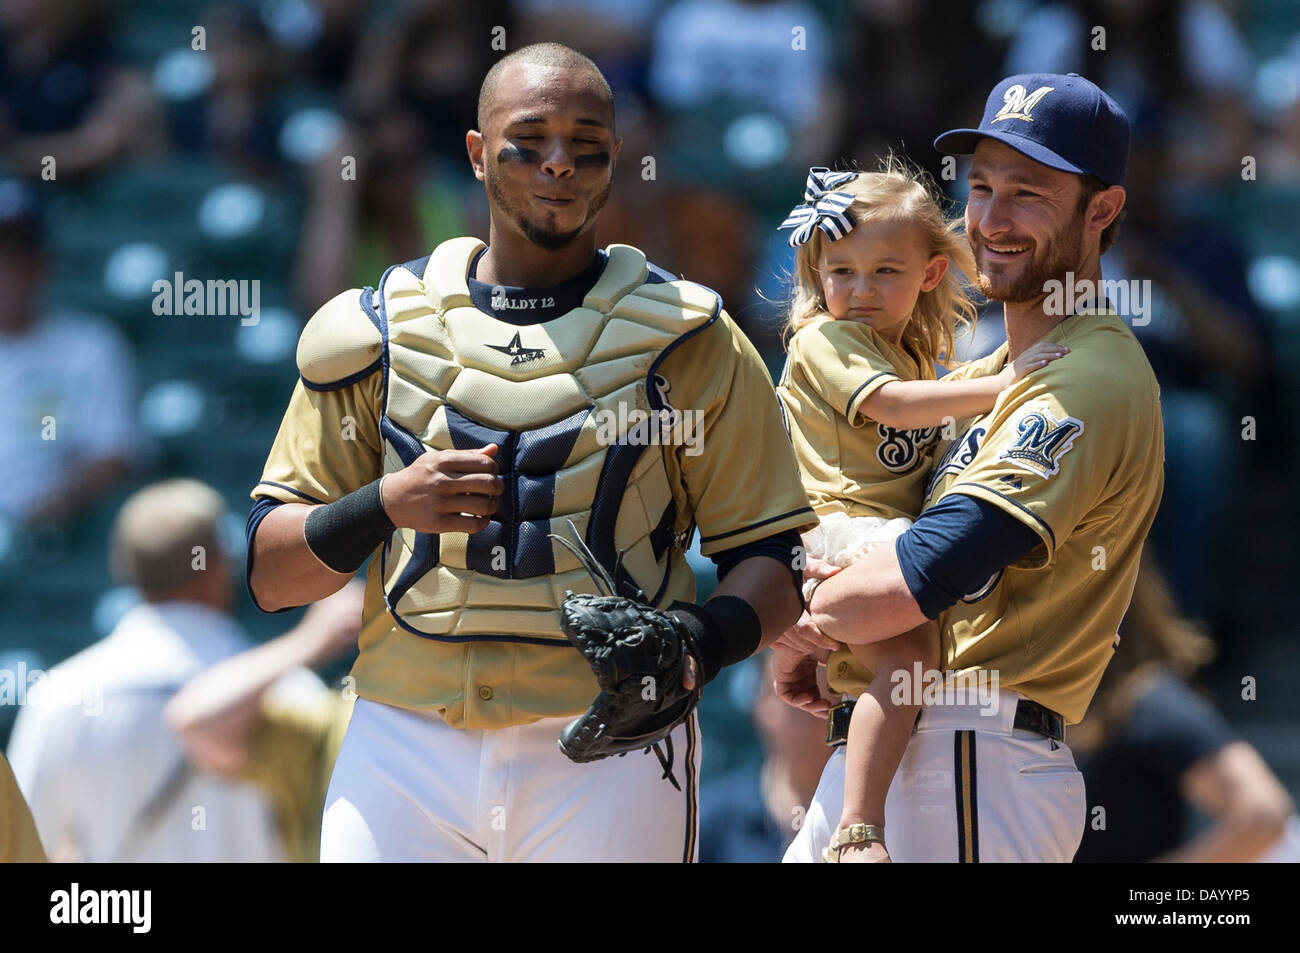 Milwaukee, Wisconsin, USA. 21st July, 2013. July 21, 2013: On Family Day at Miller Park Milwaukee Brewers Jonathan - Stock Image